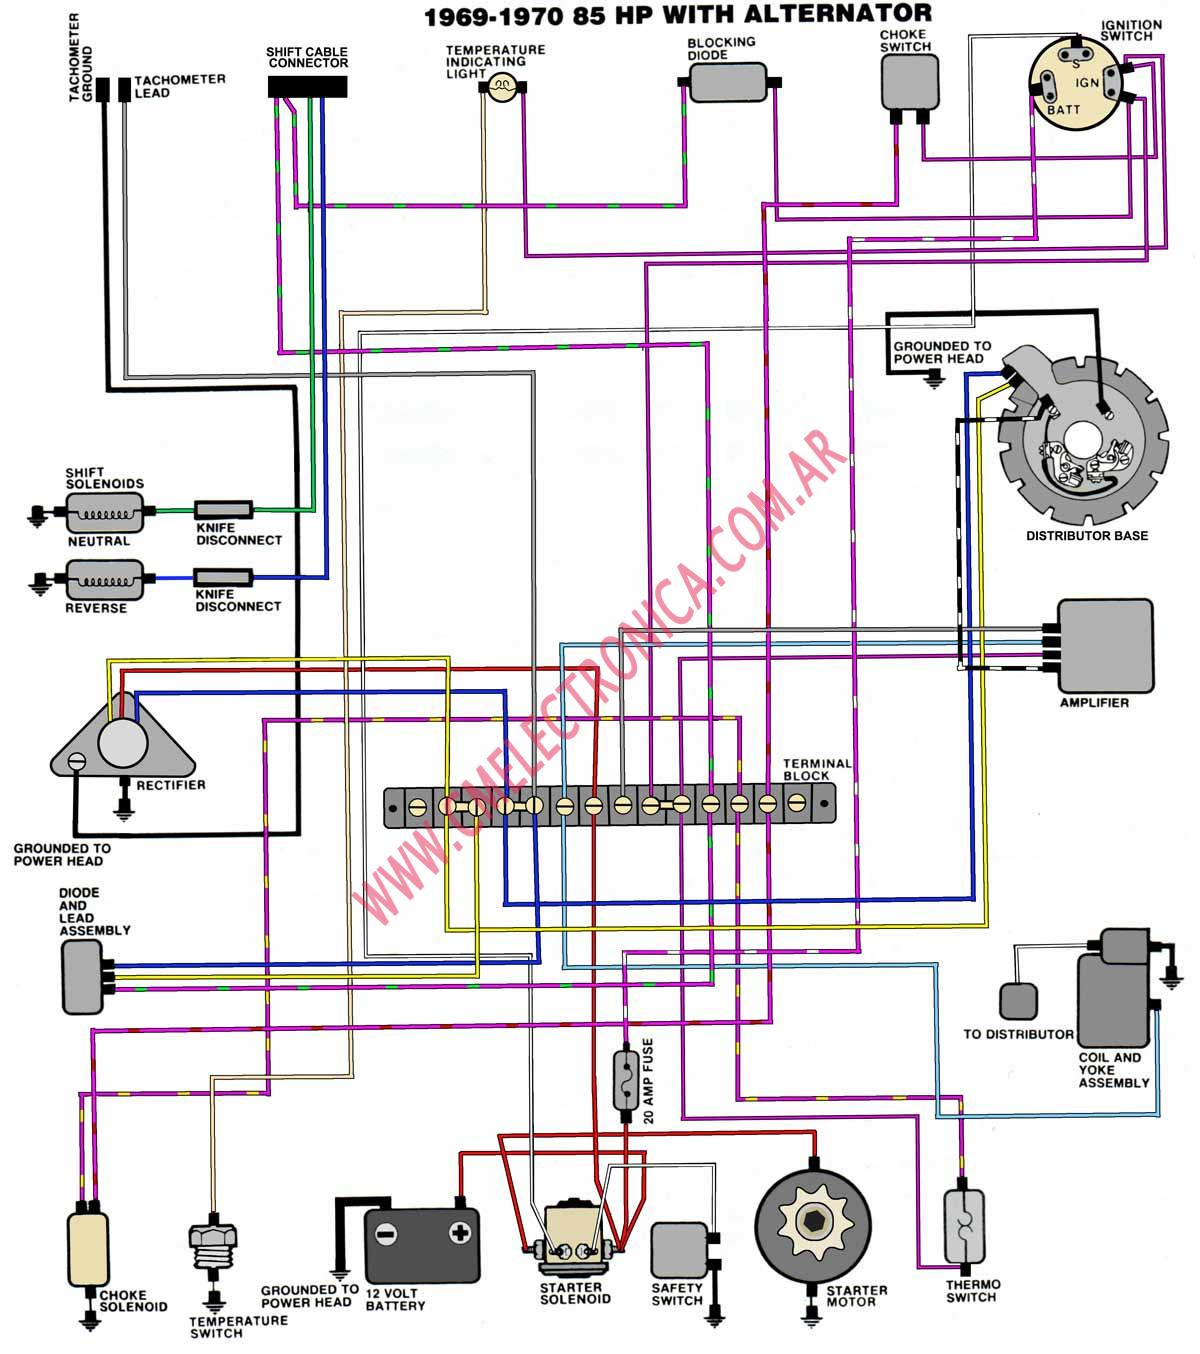 evinrude_johnson 69_70_v4?resize\\\\\\\=665%2C750 suzuki dt85 wiring diagram suzuki df140 wiring diagram, suzuki Suzuki DT40 Outboard Parts Diagrams at edmiracle.co